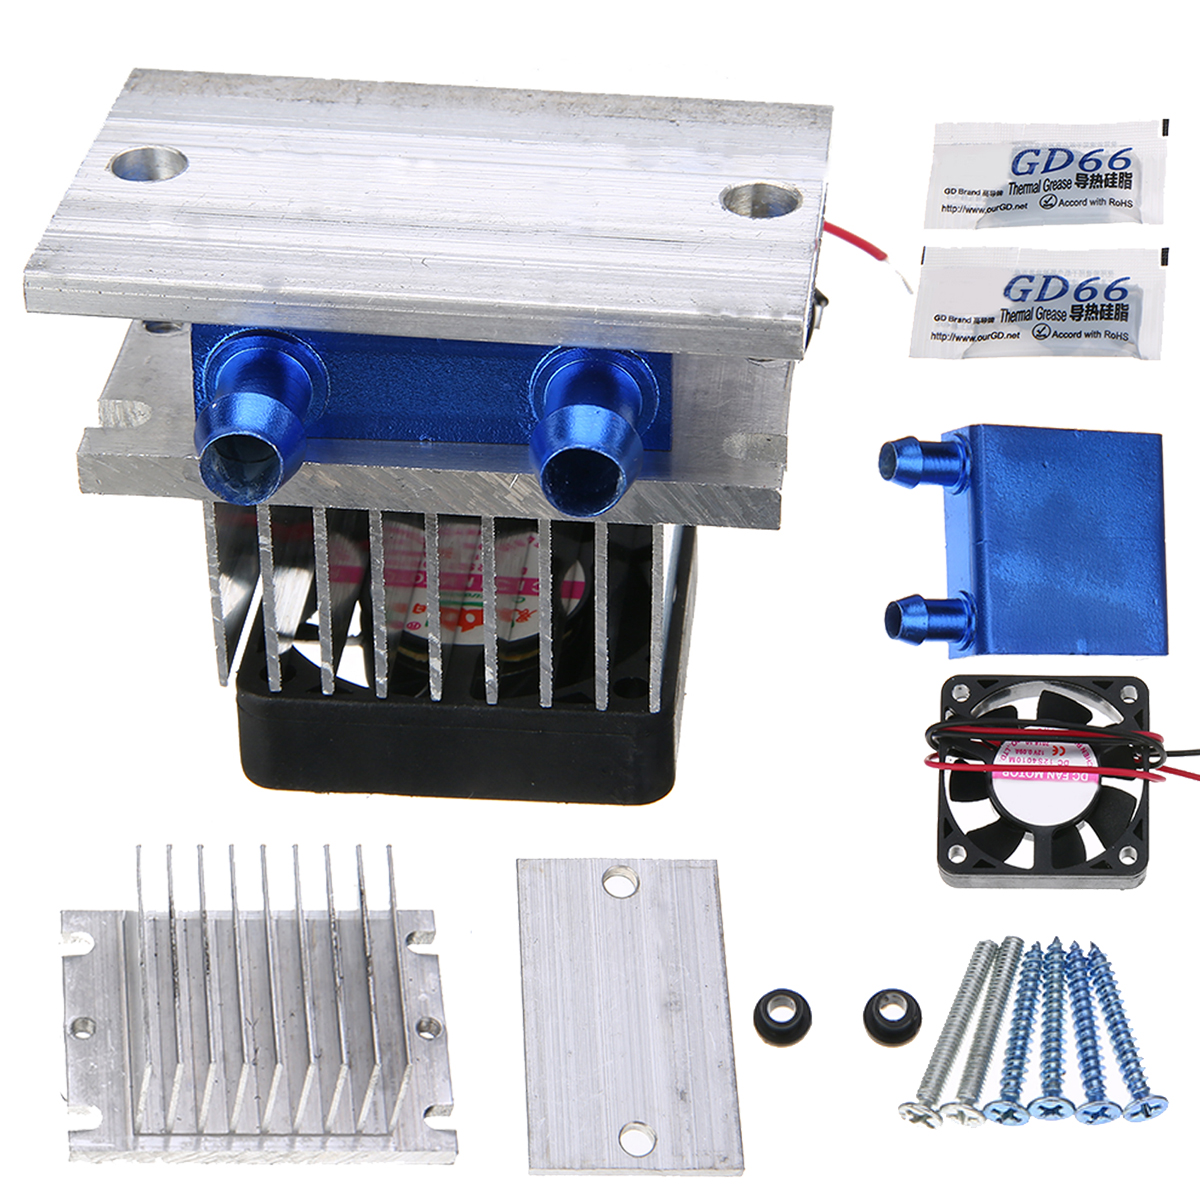 Practical Thermoelectric Peltier Semiconductor Cooler Refrigeration Cooling System Heatsink Kit Fan 12V